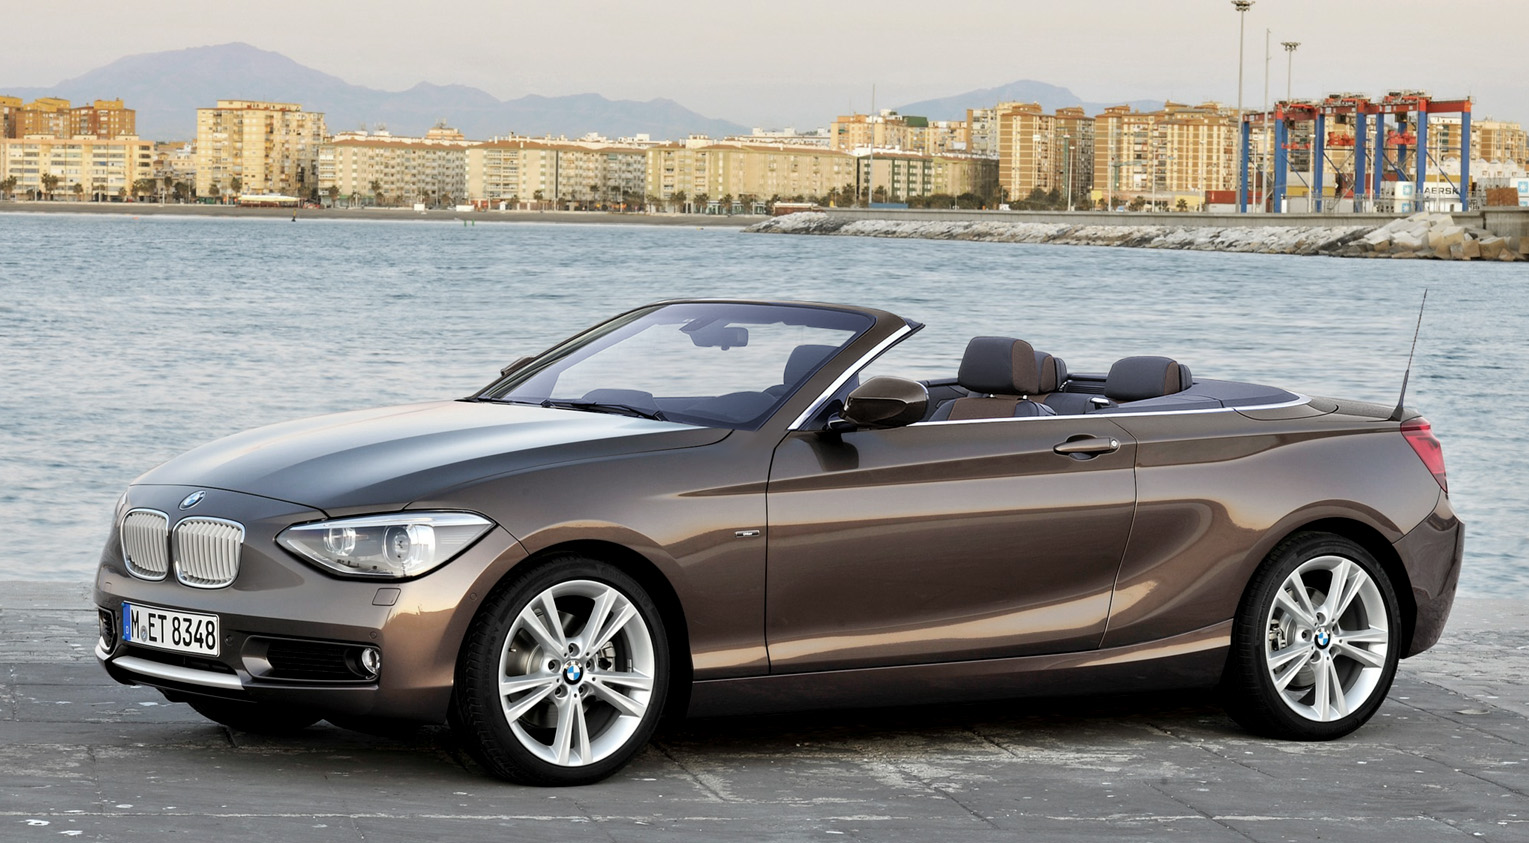 bmw 2 series cabriolet rendering. Black Bedroom Furniture Sets. Home Design Ideas